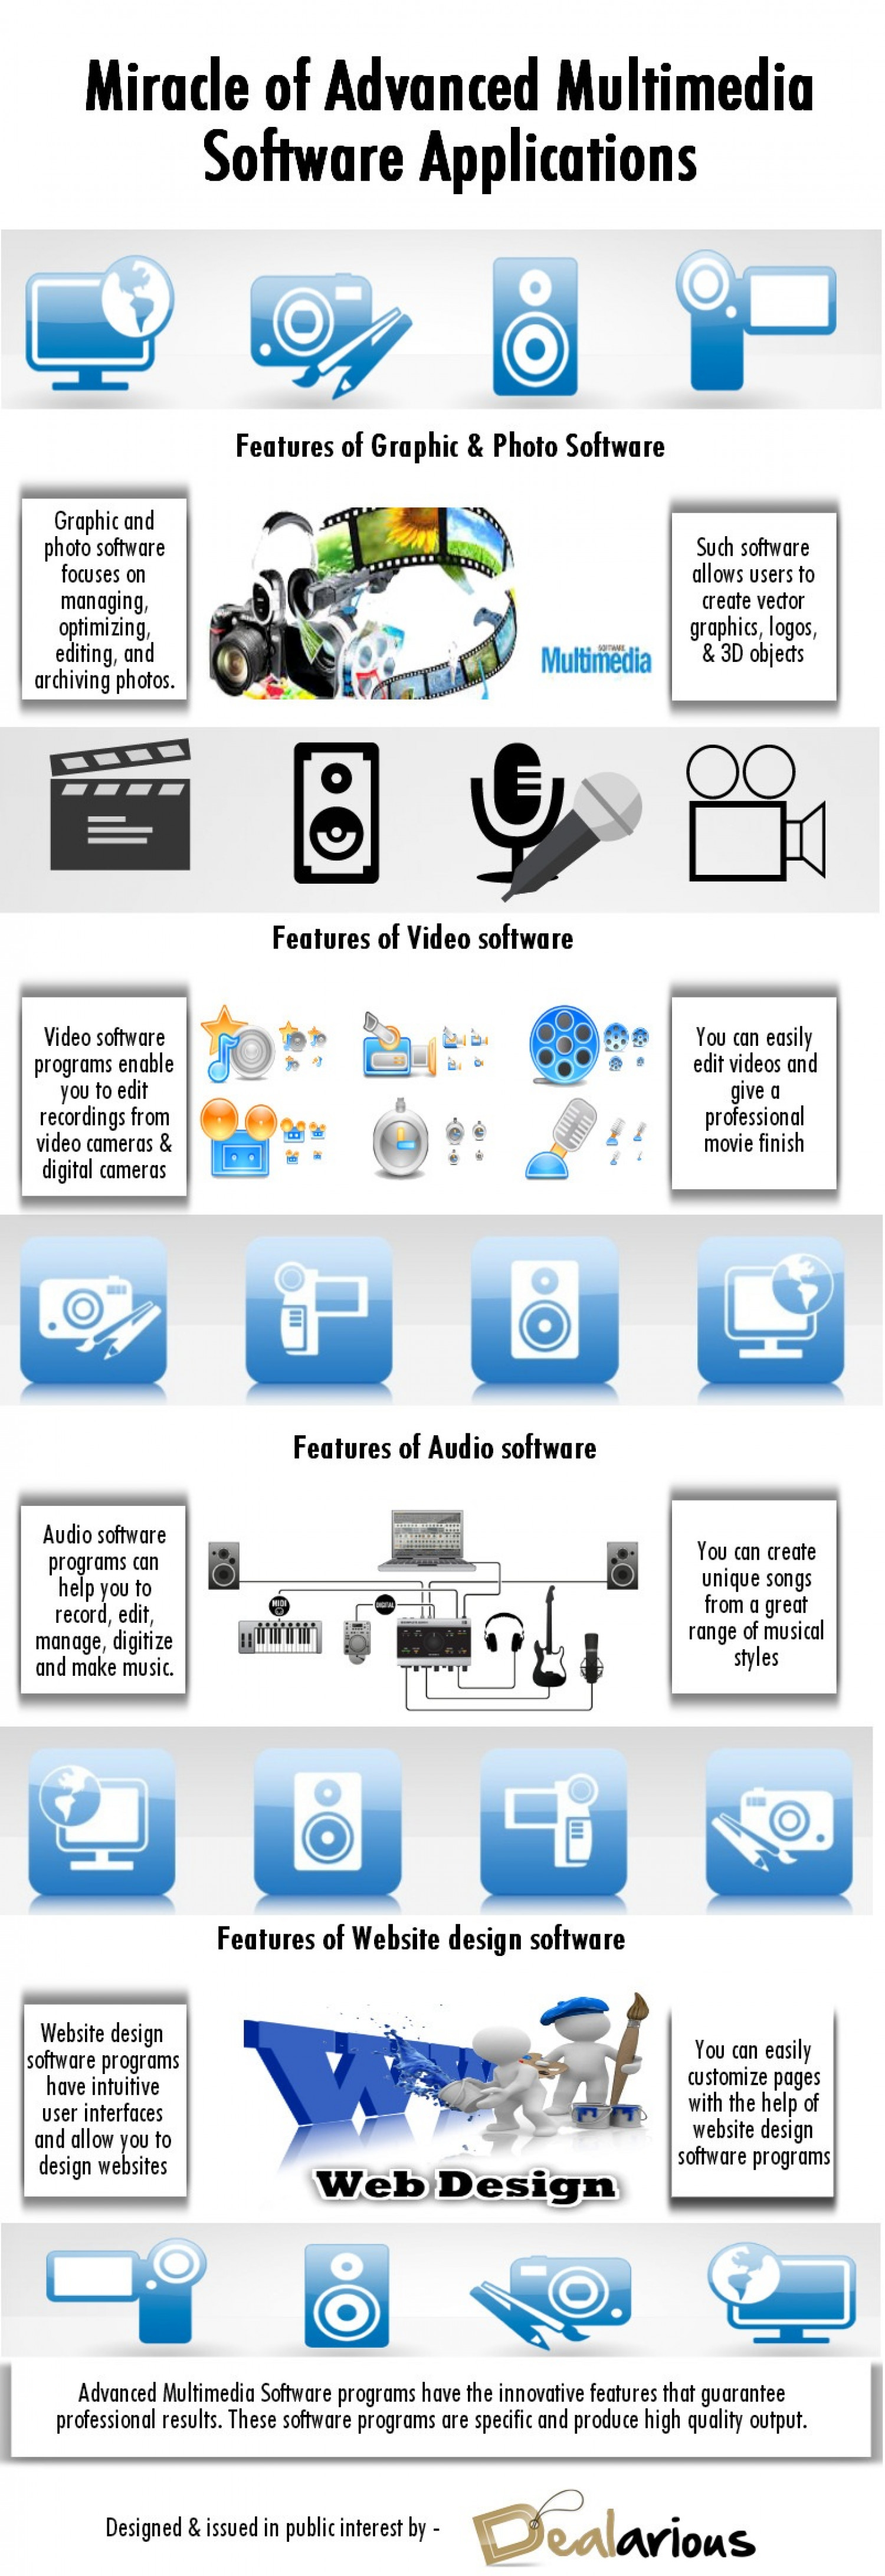 Miracle of Advanced Multimedia Software Applications Infographic